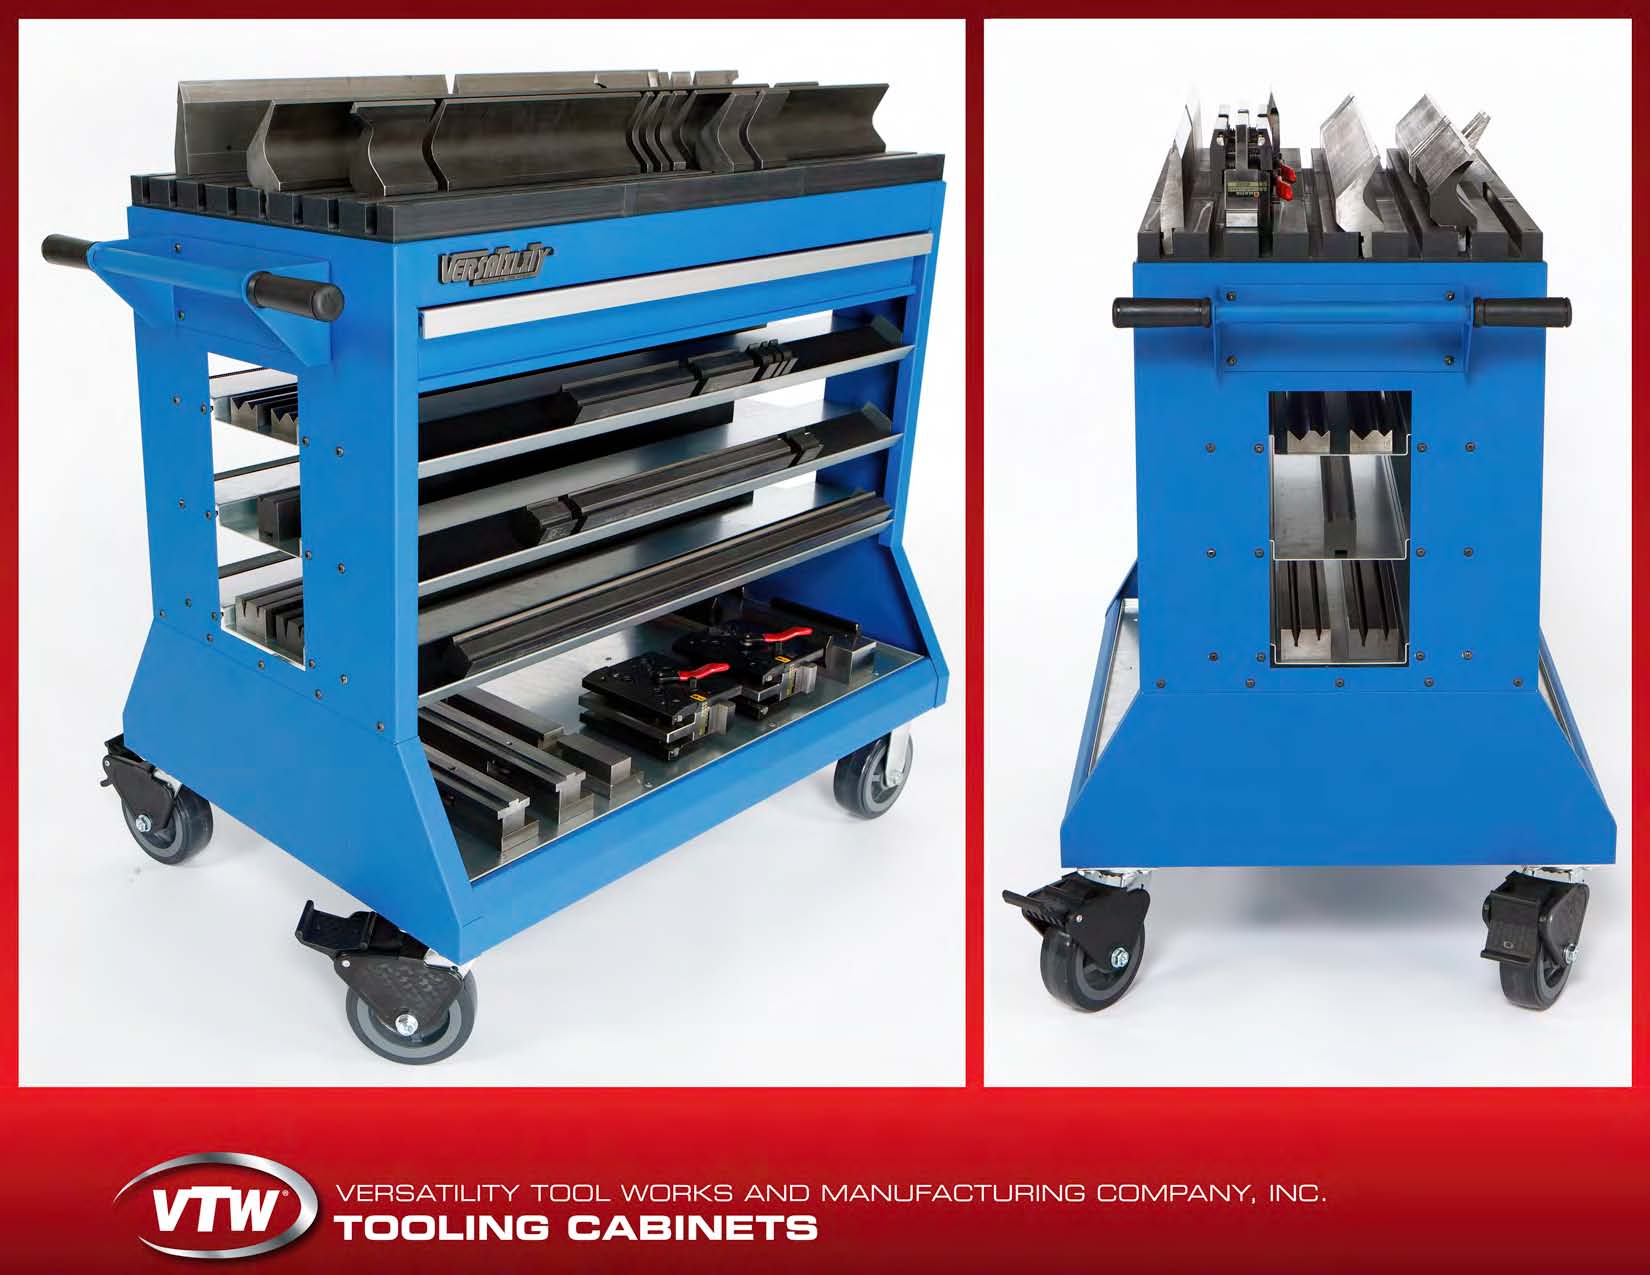 Versatility Tool Works And Manufacturing Company Inc